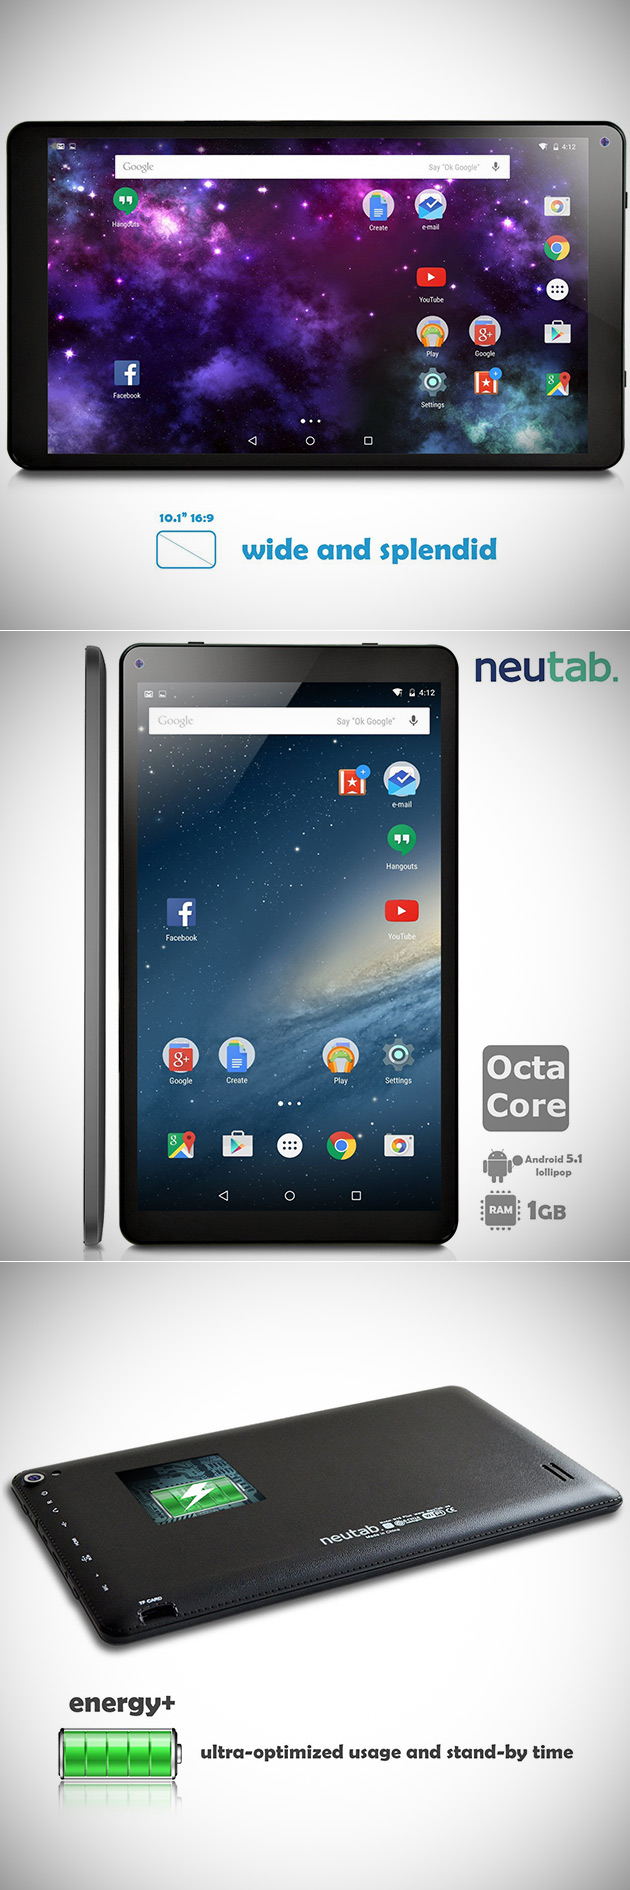 NeuTab Tablet